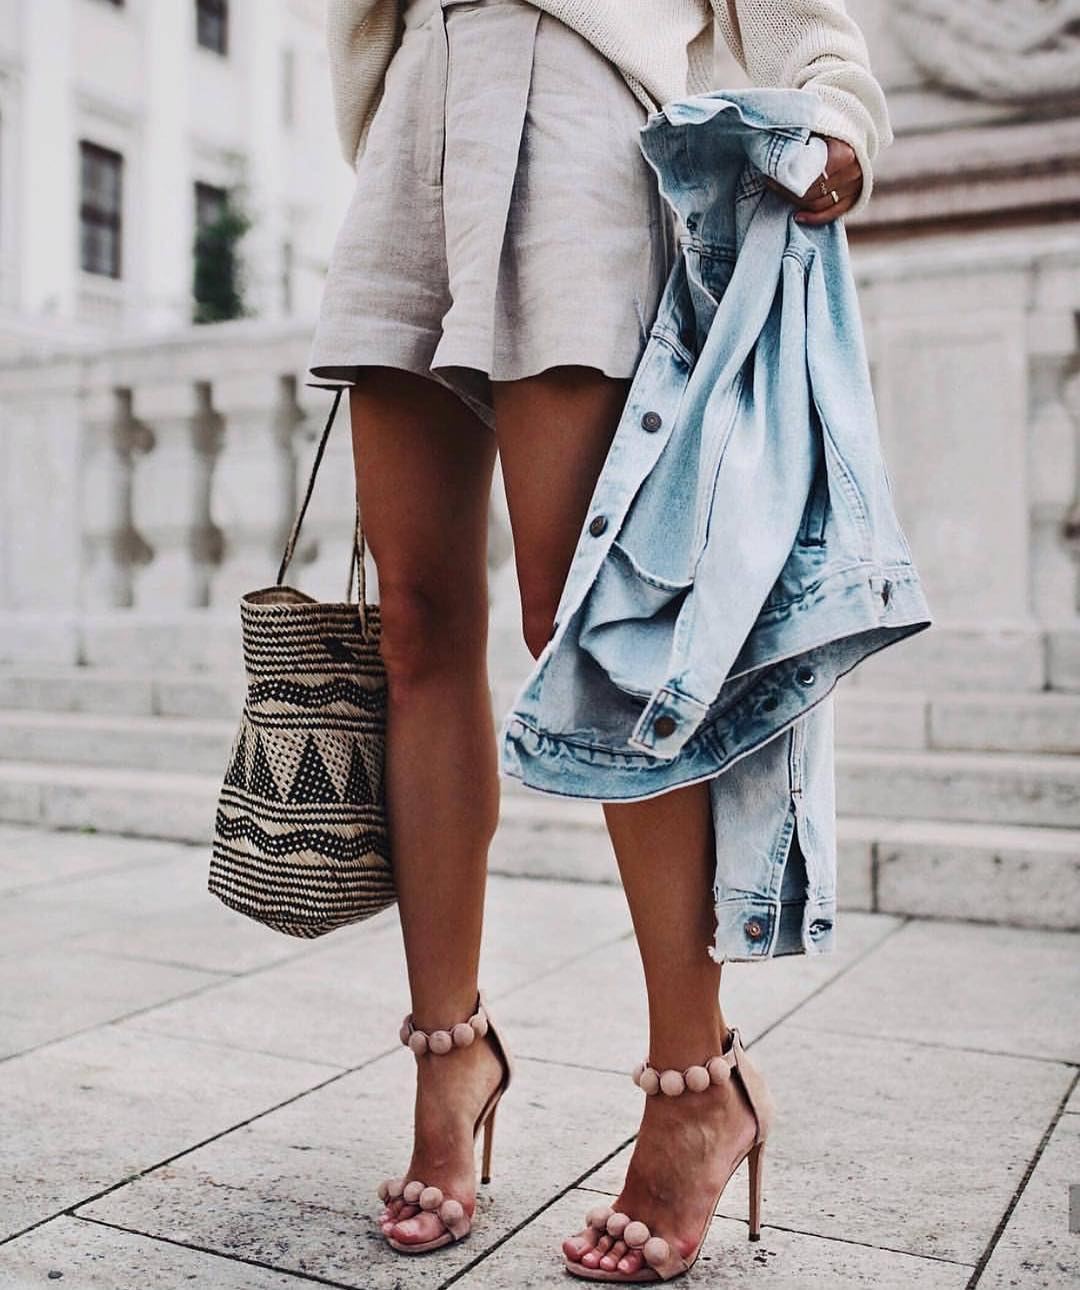 67f2466e86 How To Wear Nude Pom Pom Heeled Sandals This Summer 2019 ...